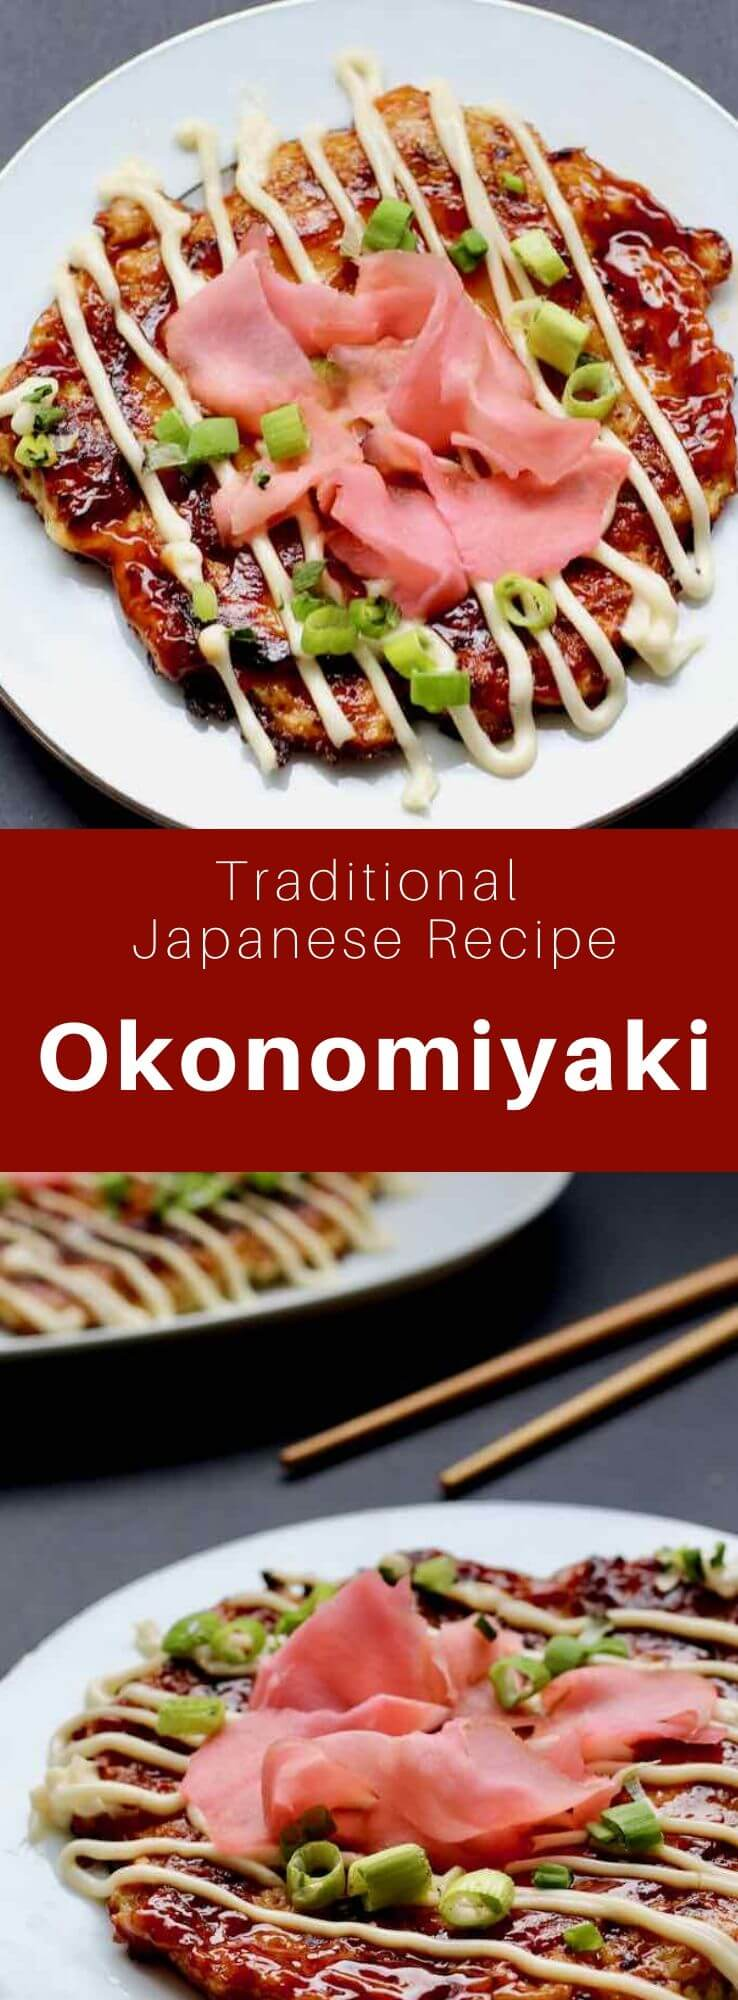 Okonomiyaki (お好み焼き) is a Japanese dish made of dough that coats a number of very different ingredients, often compared to pancake or pizza. #Japan #Japanese #JapaneseFood #JapaneseCuisine #JapaneseRecipe #AsianCuisine #AsianFood #AsianCuisine #WorldCuisine #196flavors